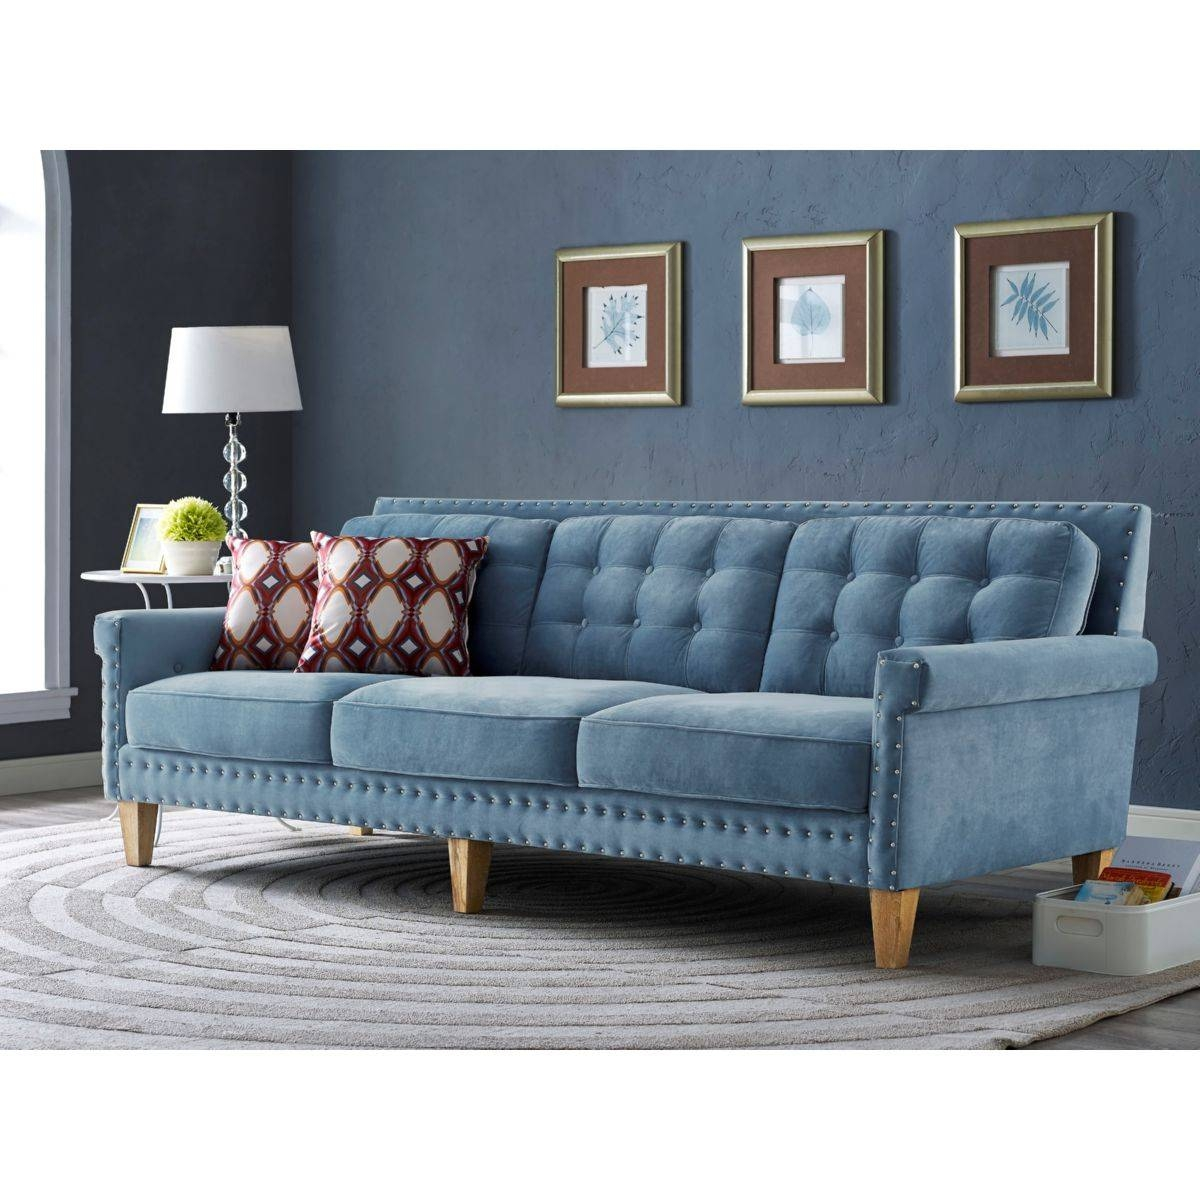 Tov Furniture Tov S75 Jonathan Tufted Blue Velvet Sofa W/ Silver Within Silver Tufted Sofas (Photo 7 of 15)